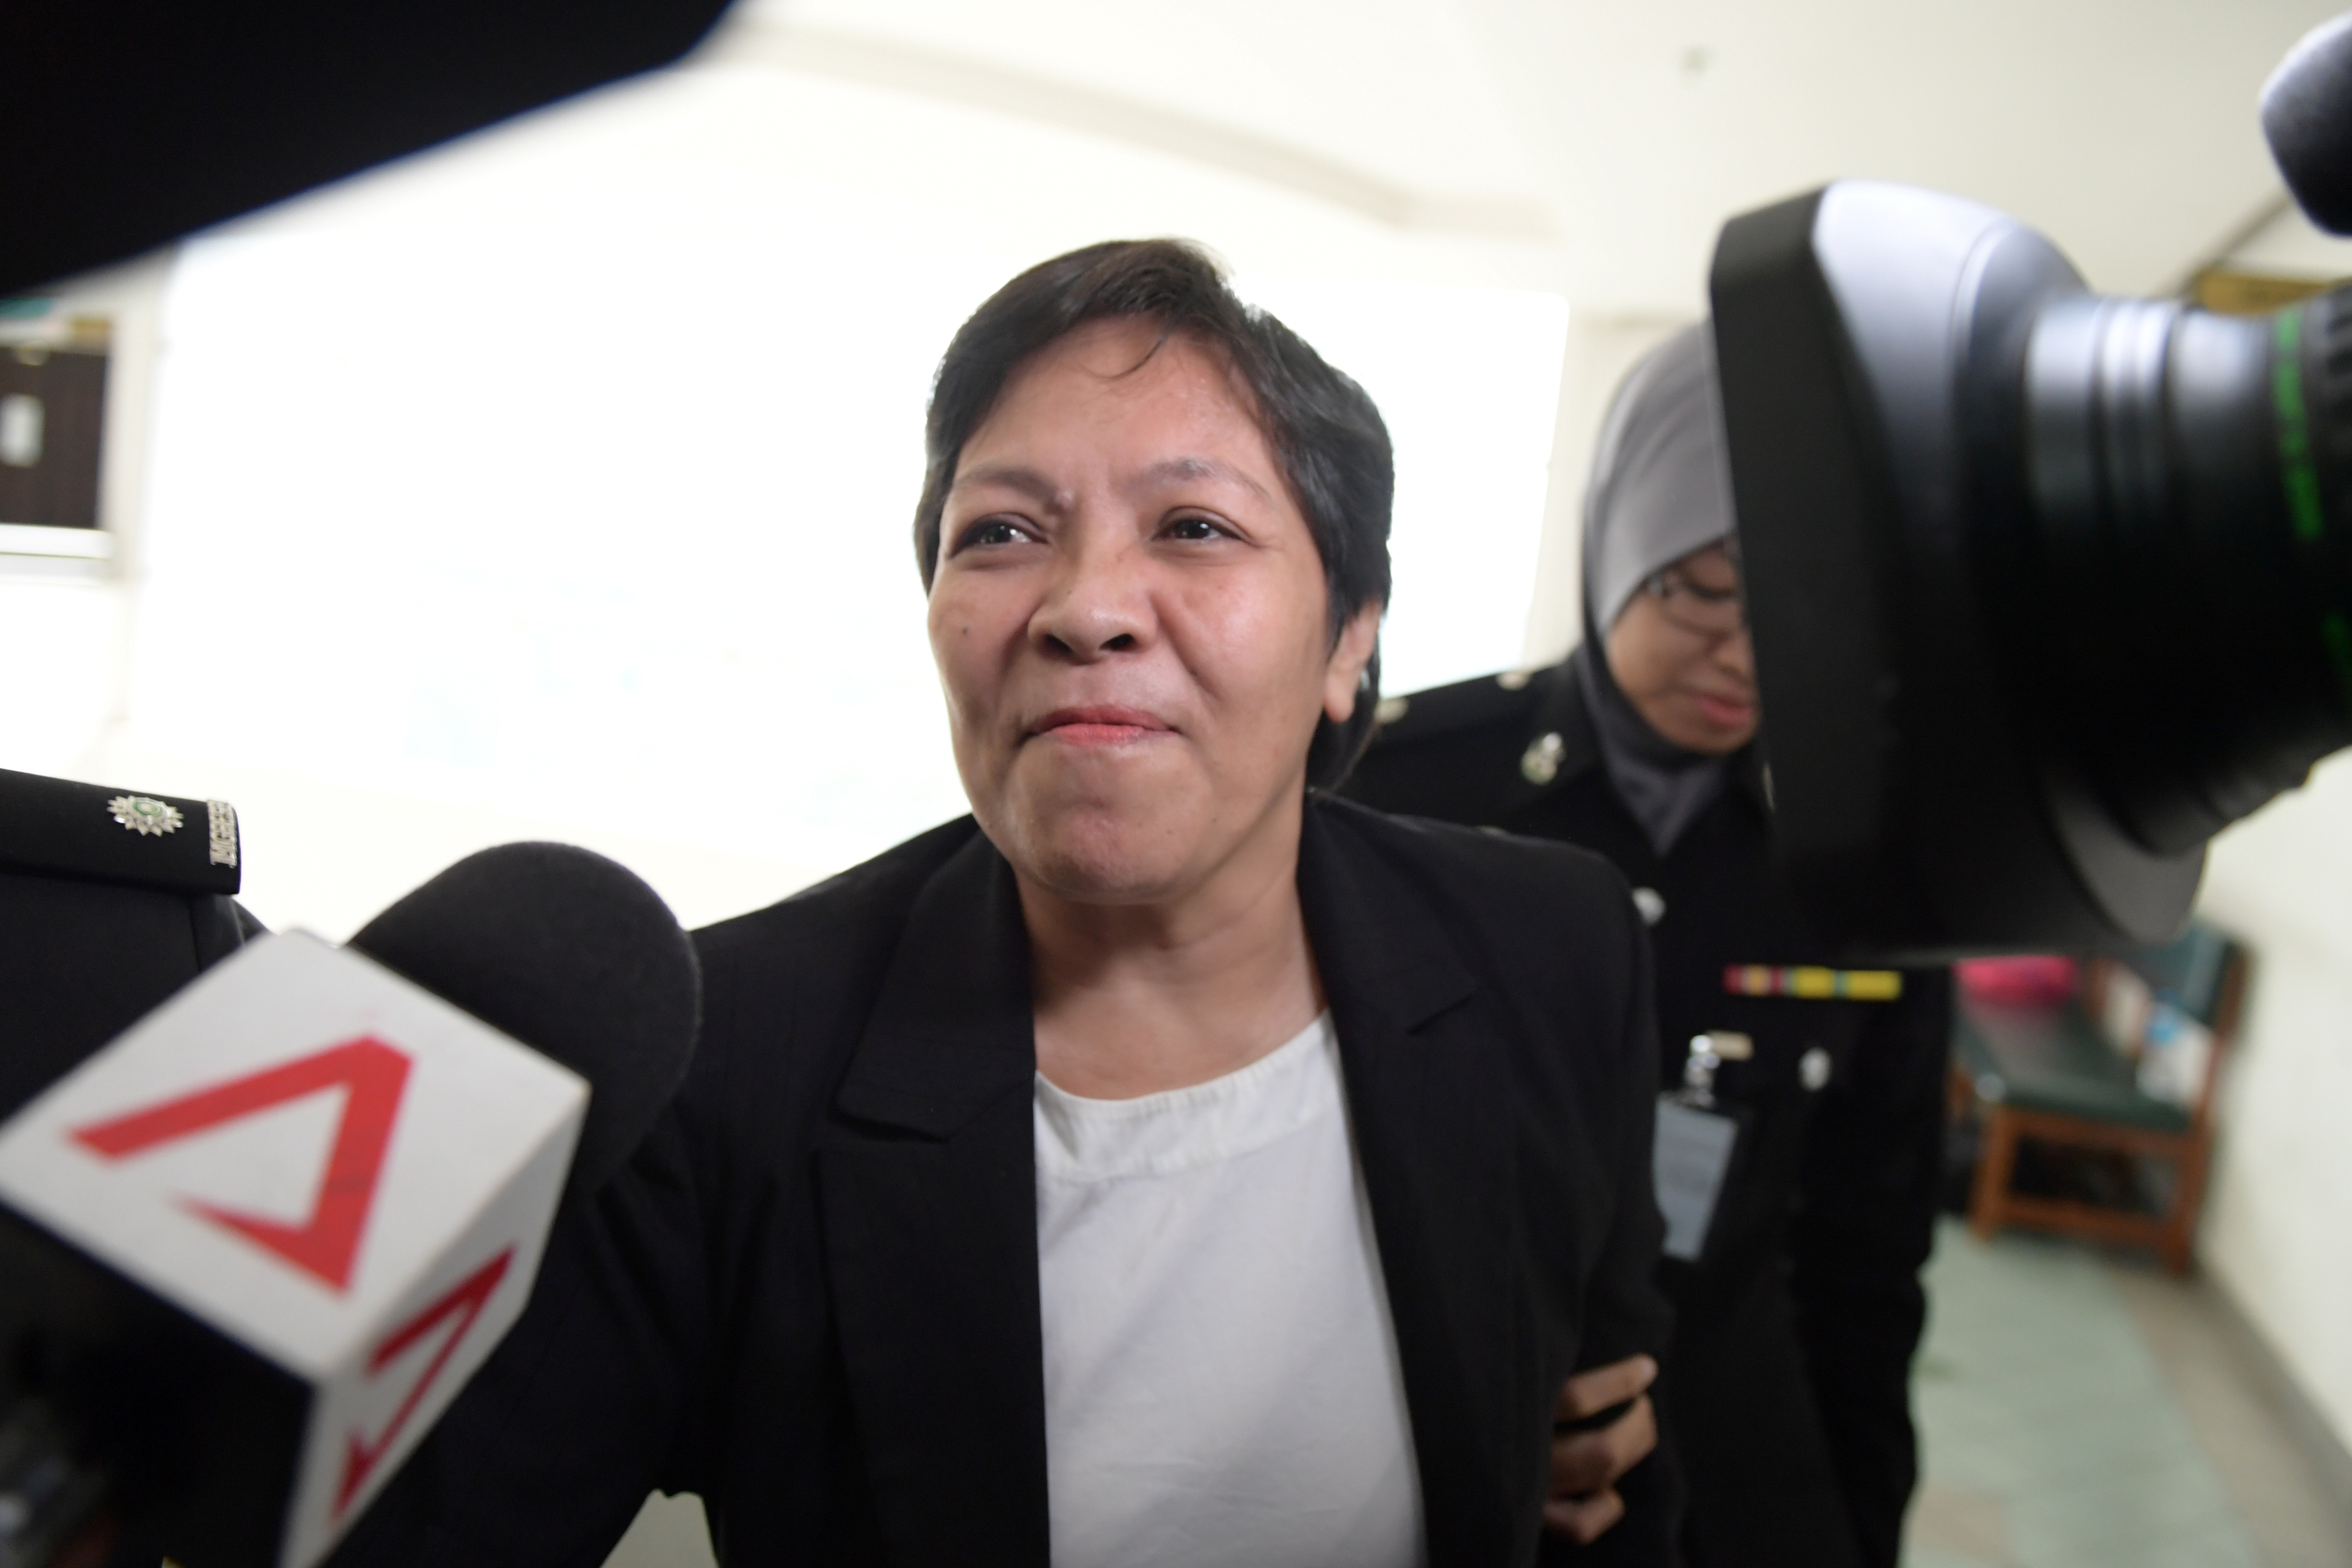 Maria Elvira Pinto Exposto reacts after she was cleared of drug trafficking charges